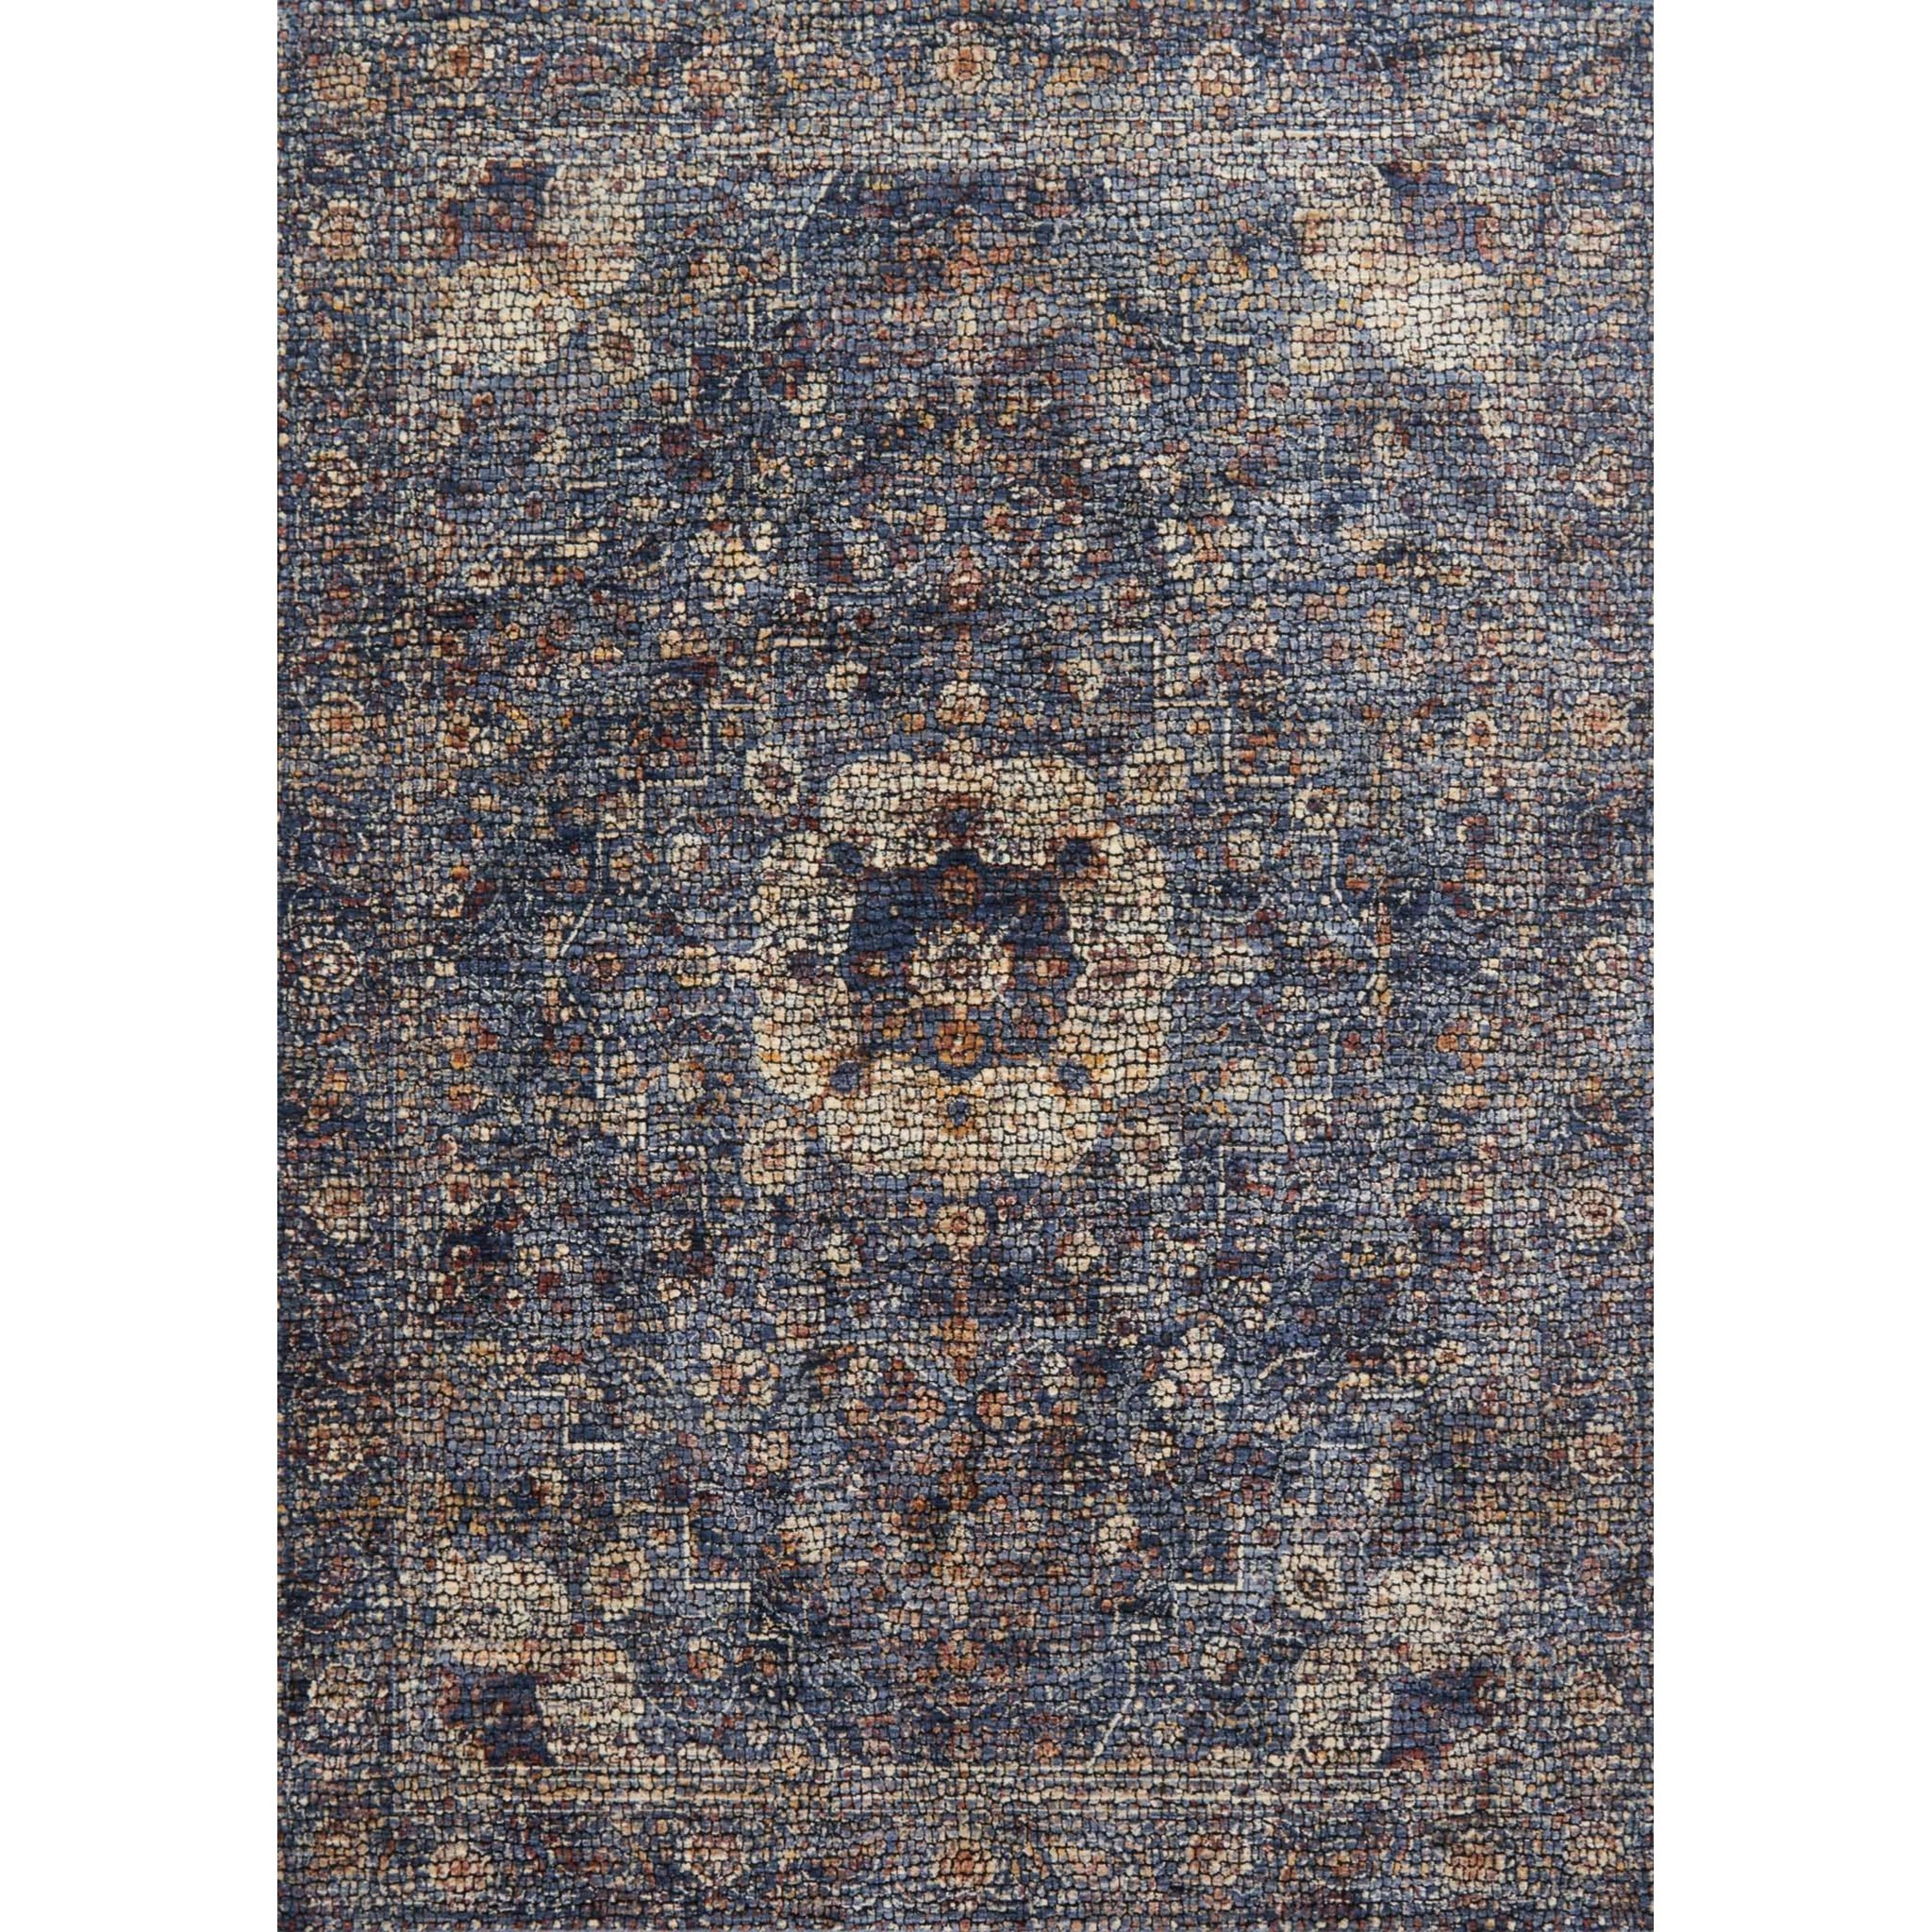 """Porcia 2'-8"""" X 10' Runner by Loloi Rugs at Virginia Furniture Market"""